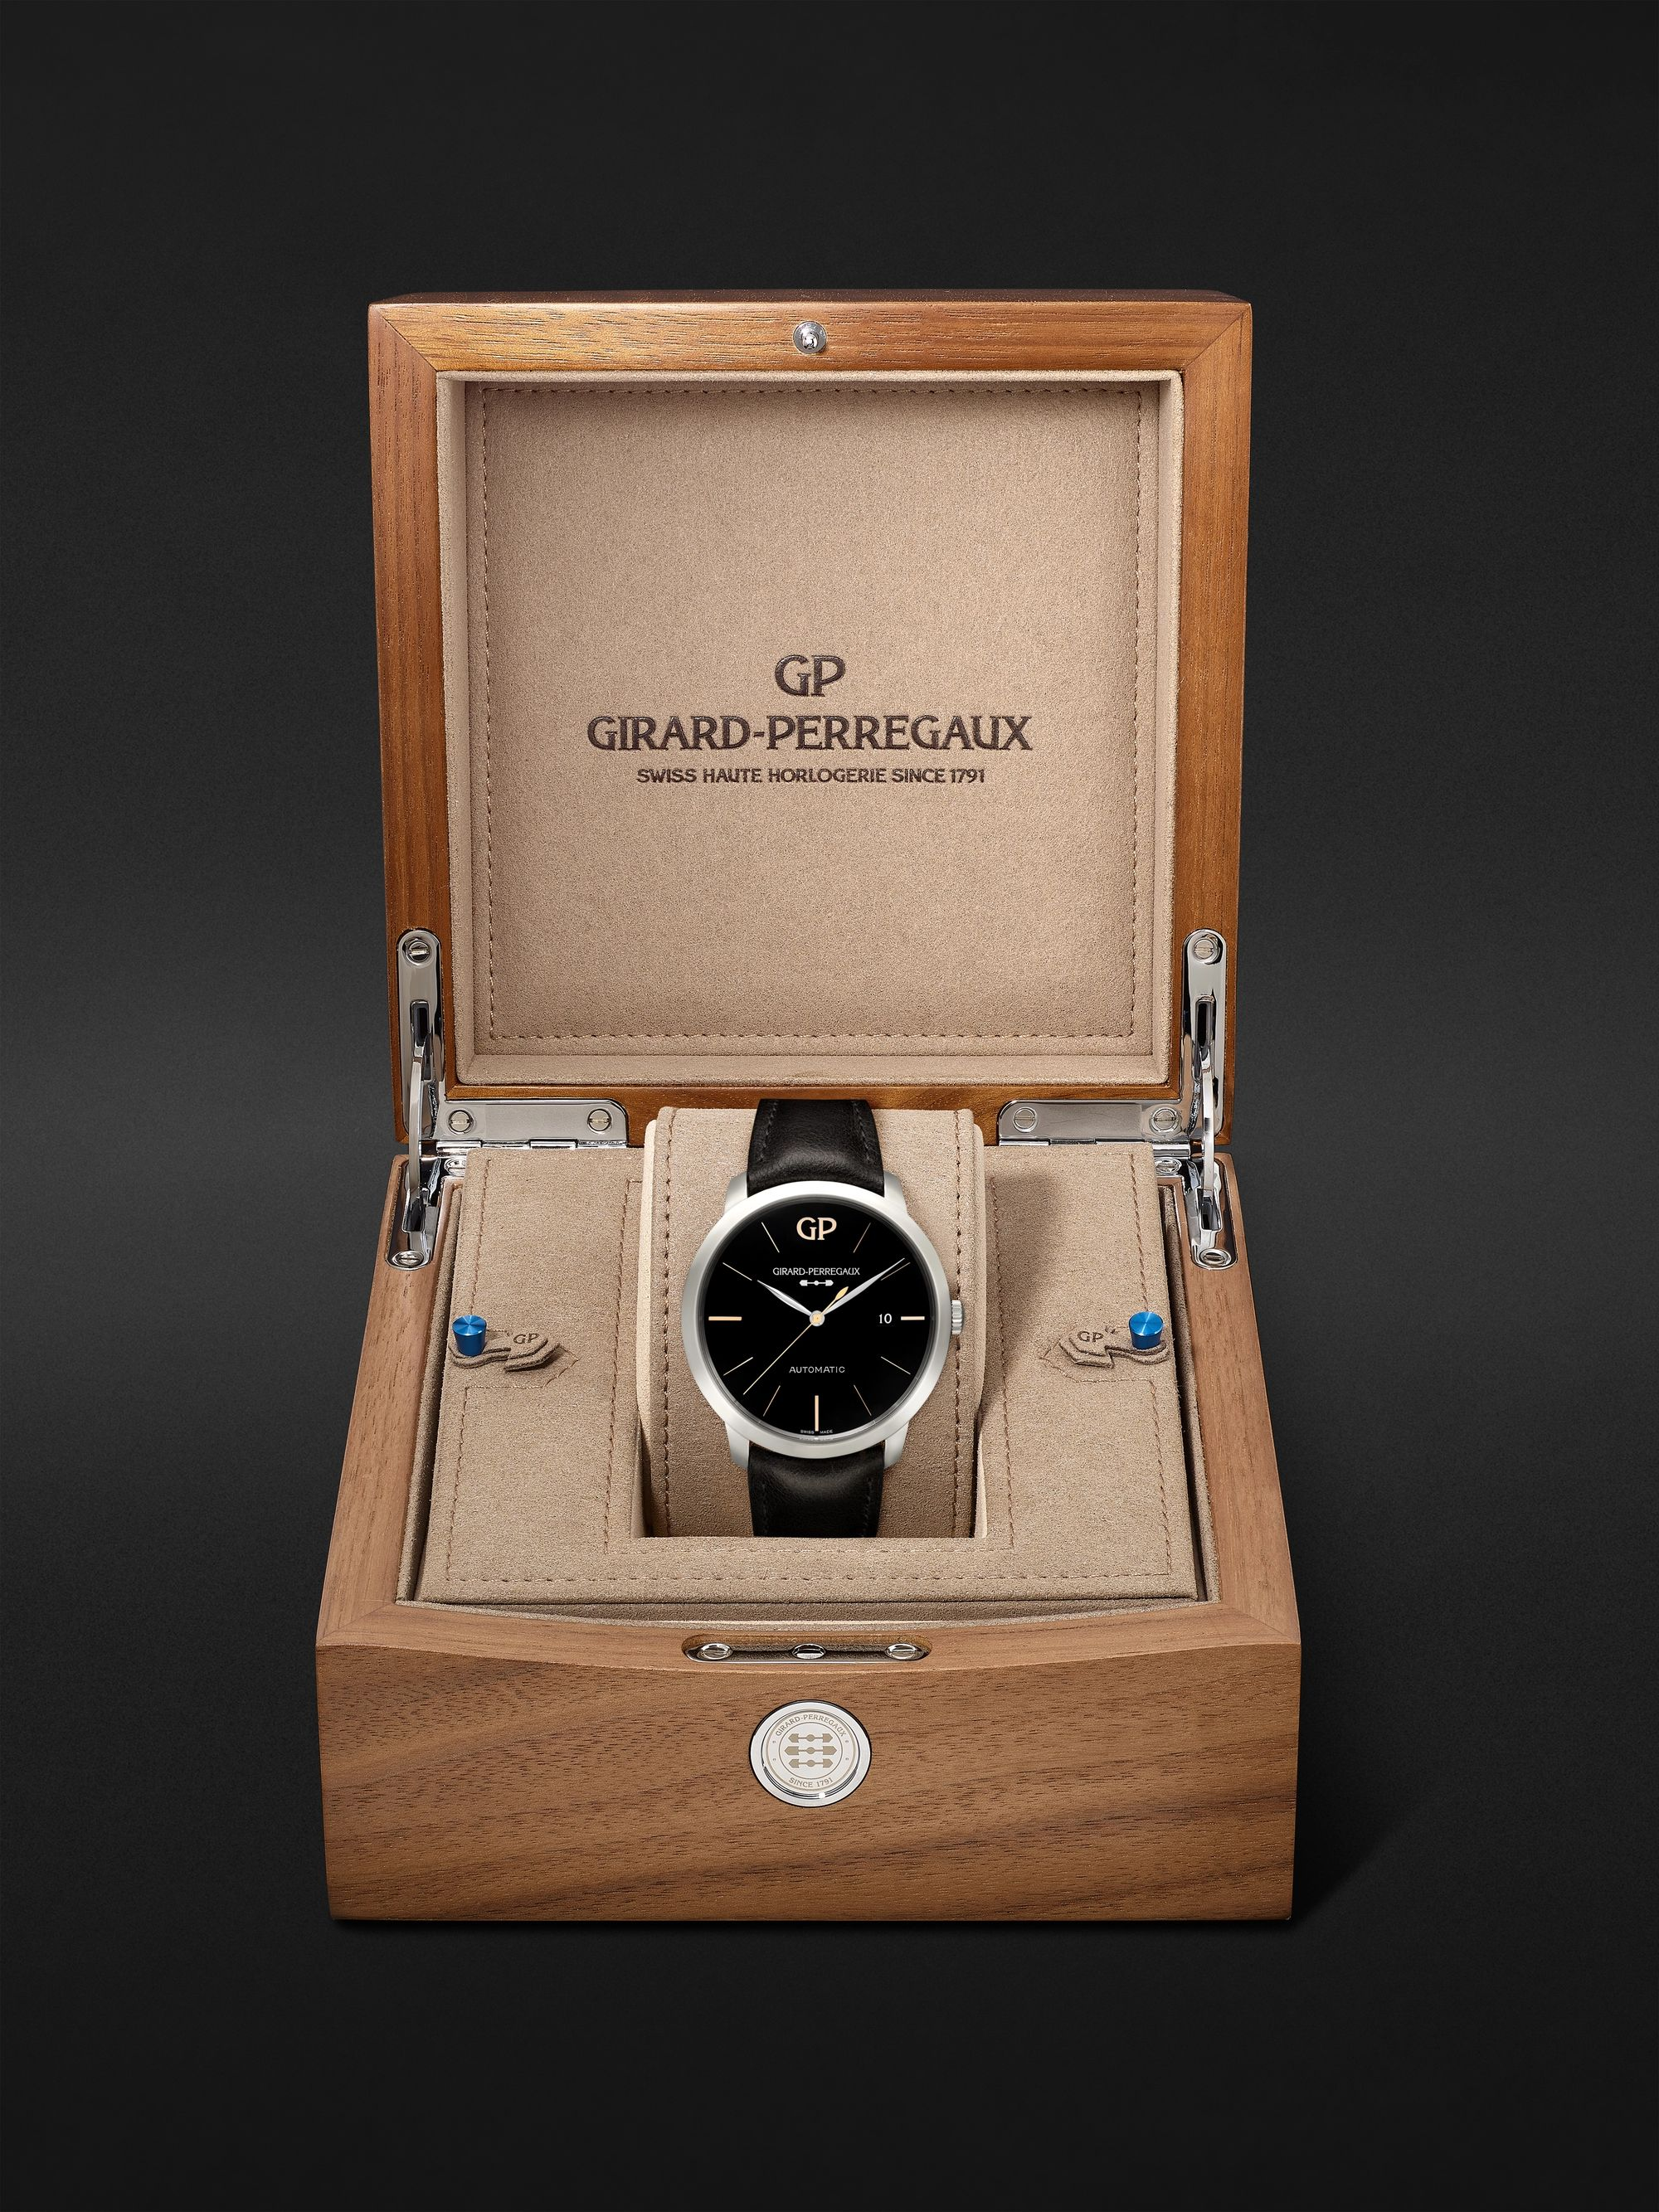 Girard-Perregaux 1966 Infinity Edition Automatic 40mm Stainless Steel and Leather Watch, Ref. No. 49555-11-632-BB60